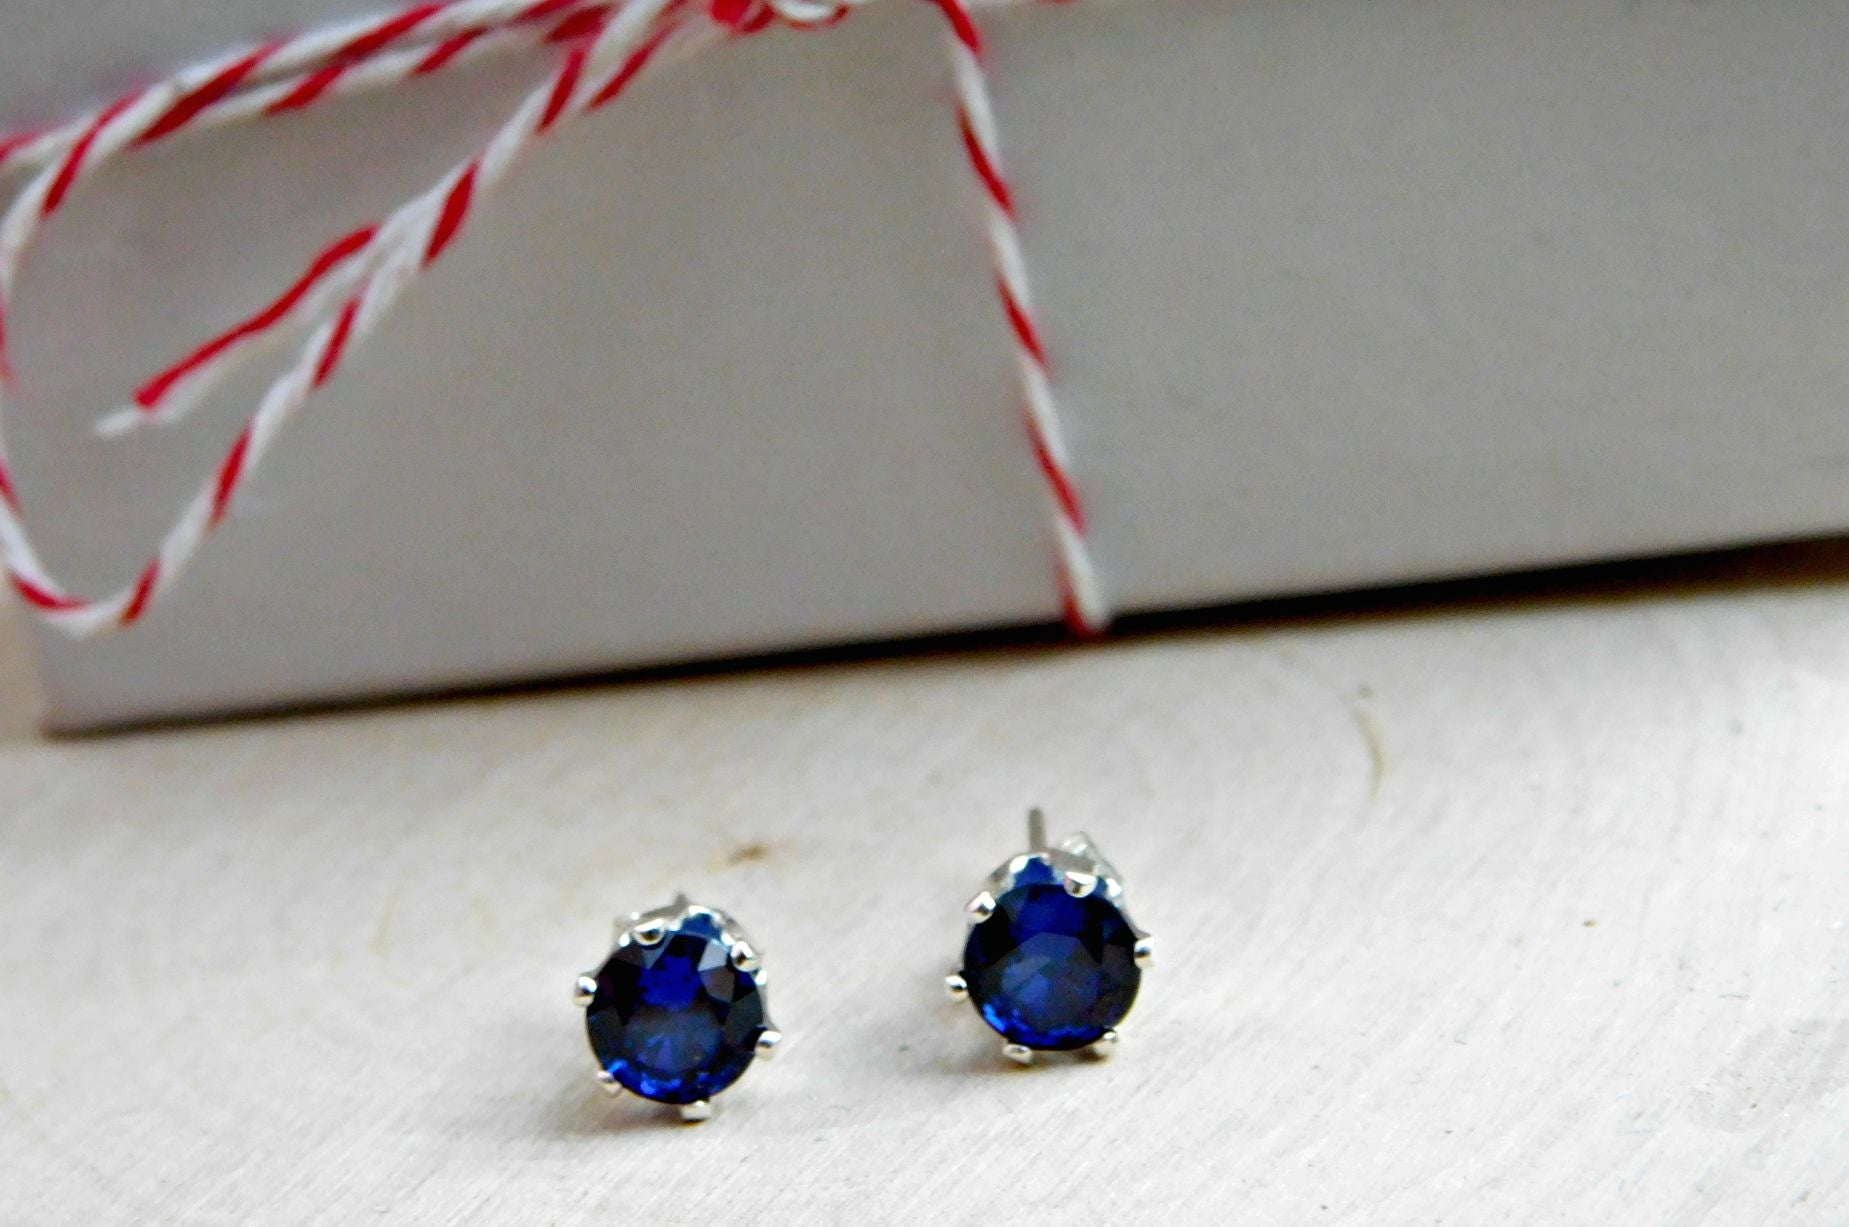 Lab Created Sapphire Earrings